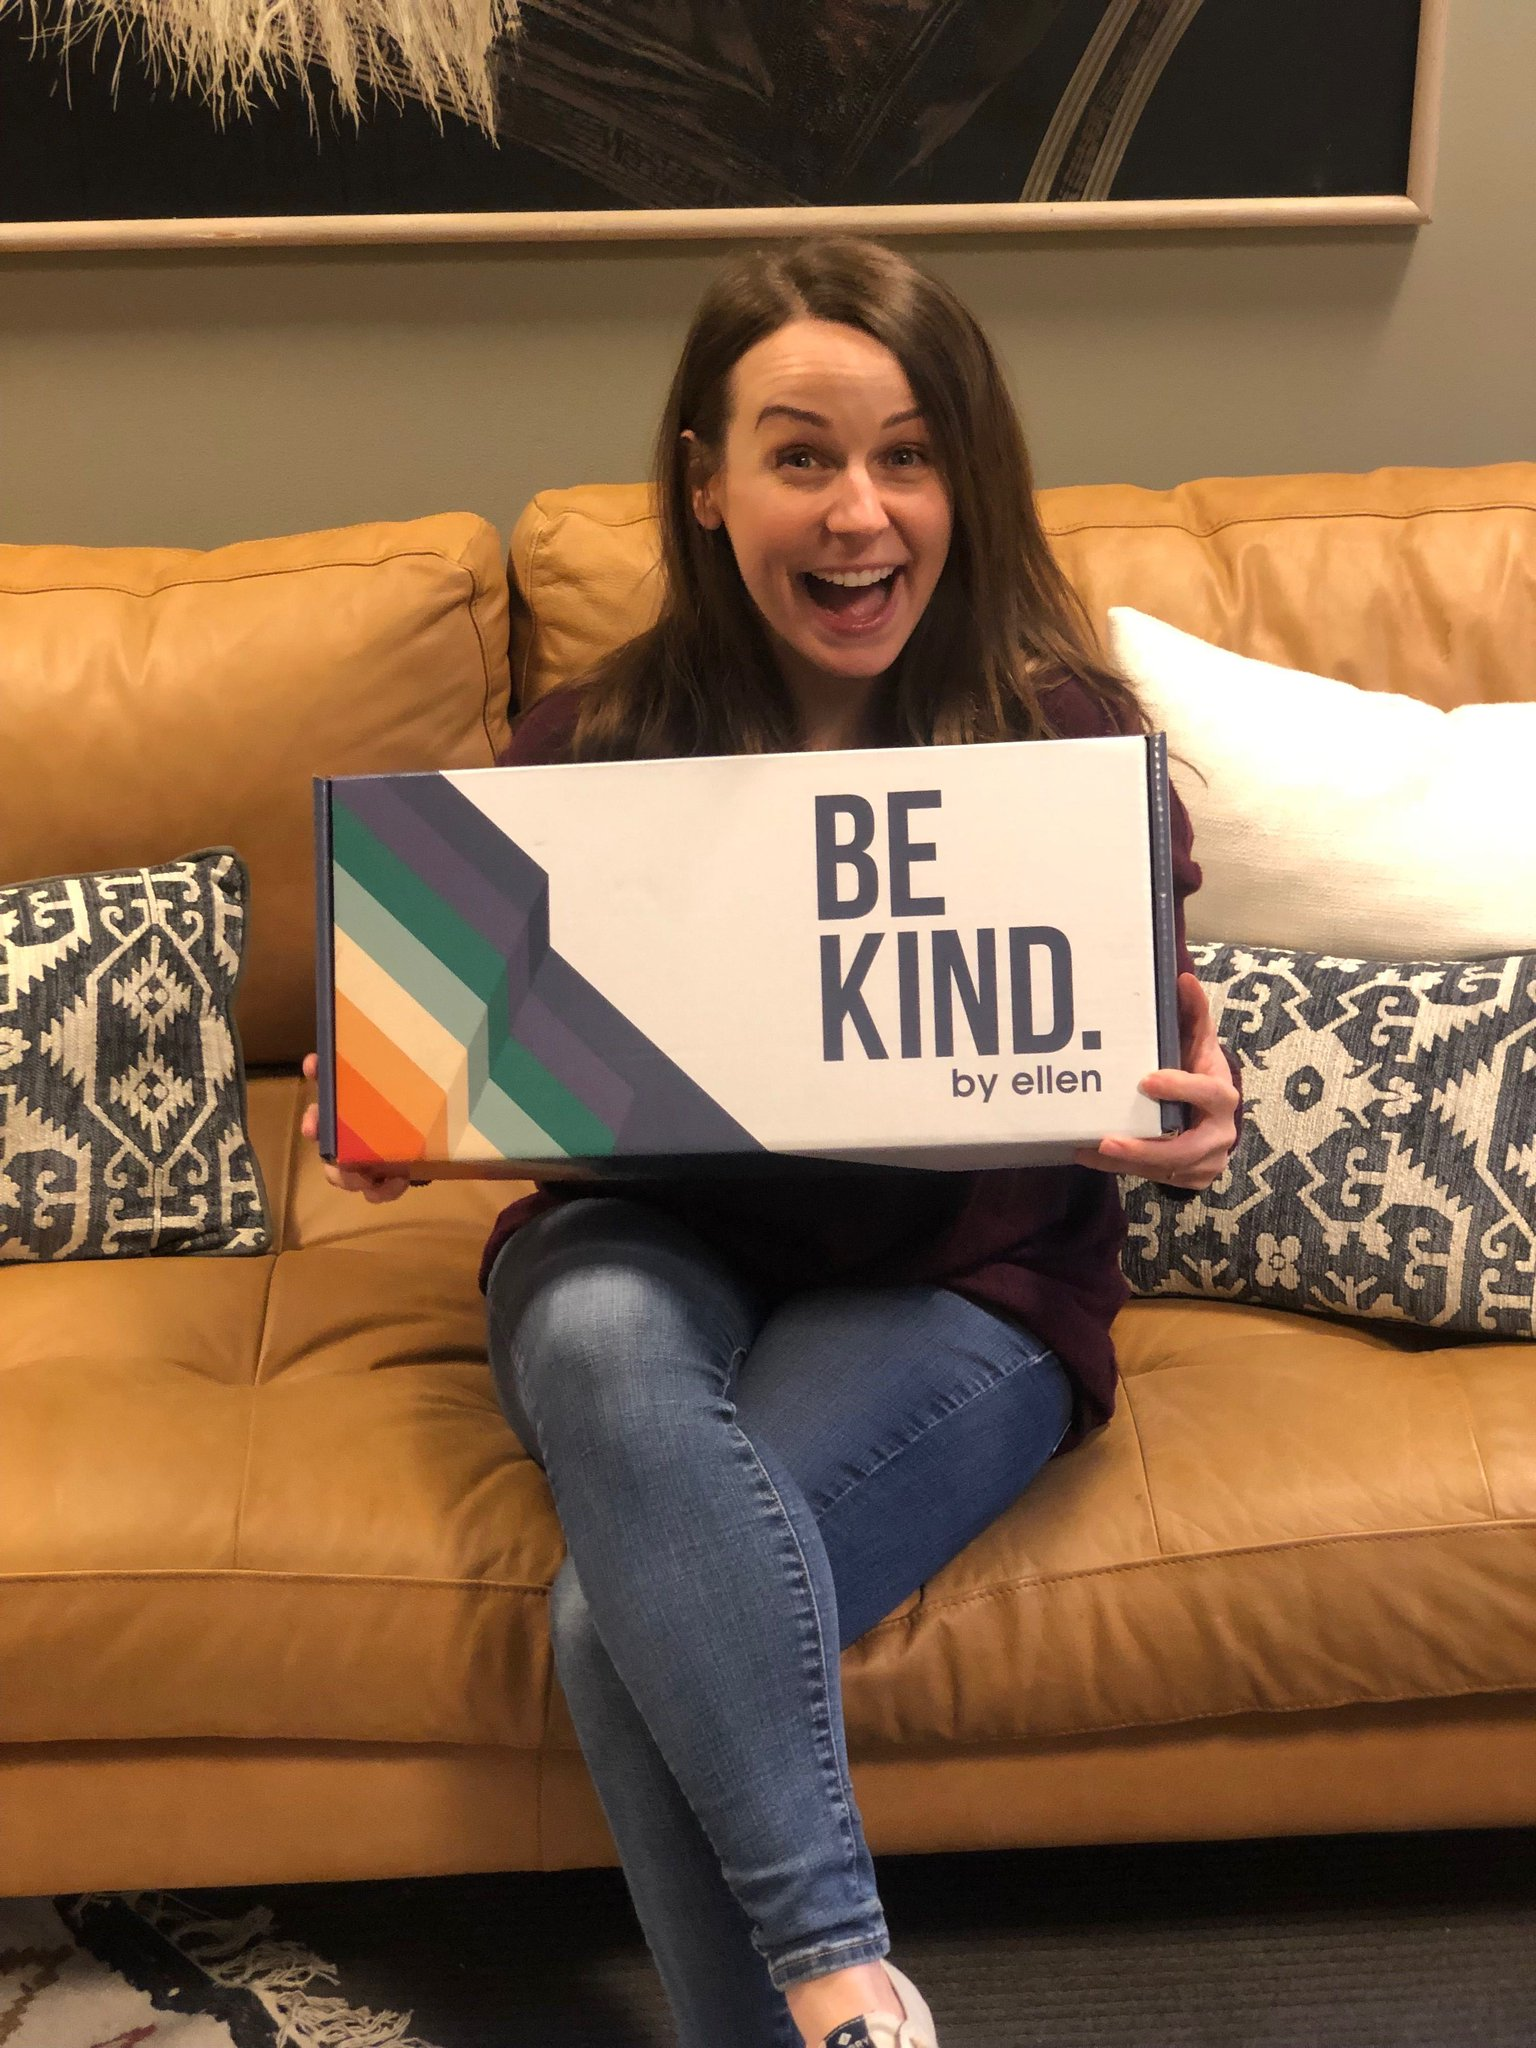 The new Be Kind box is here! Get yours before they're all gone! https://t.co/yoo25sOxao https://t.co/aBMCWRg6uL